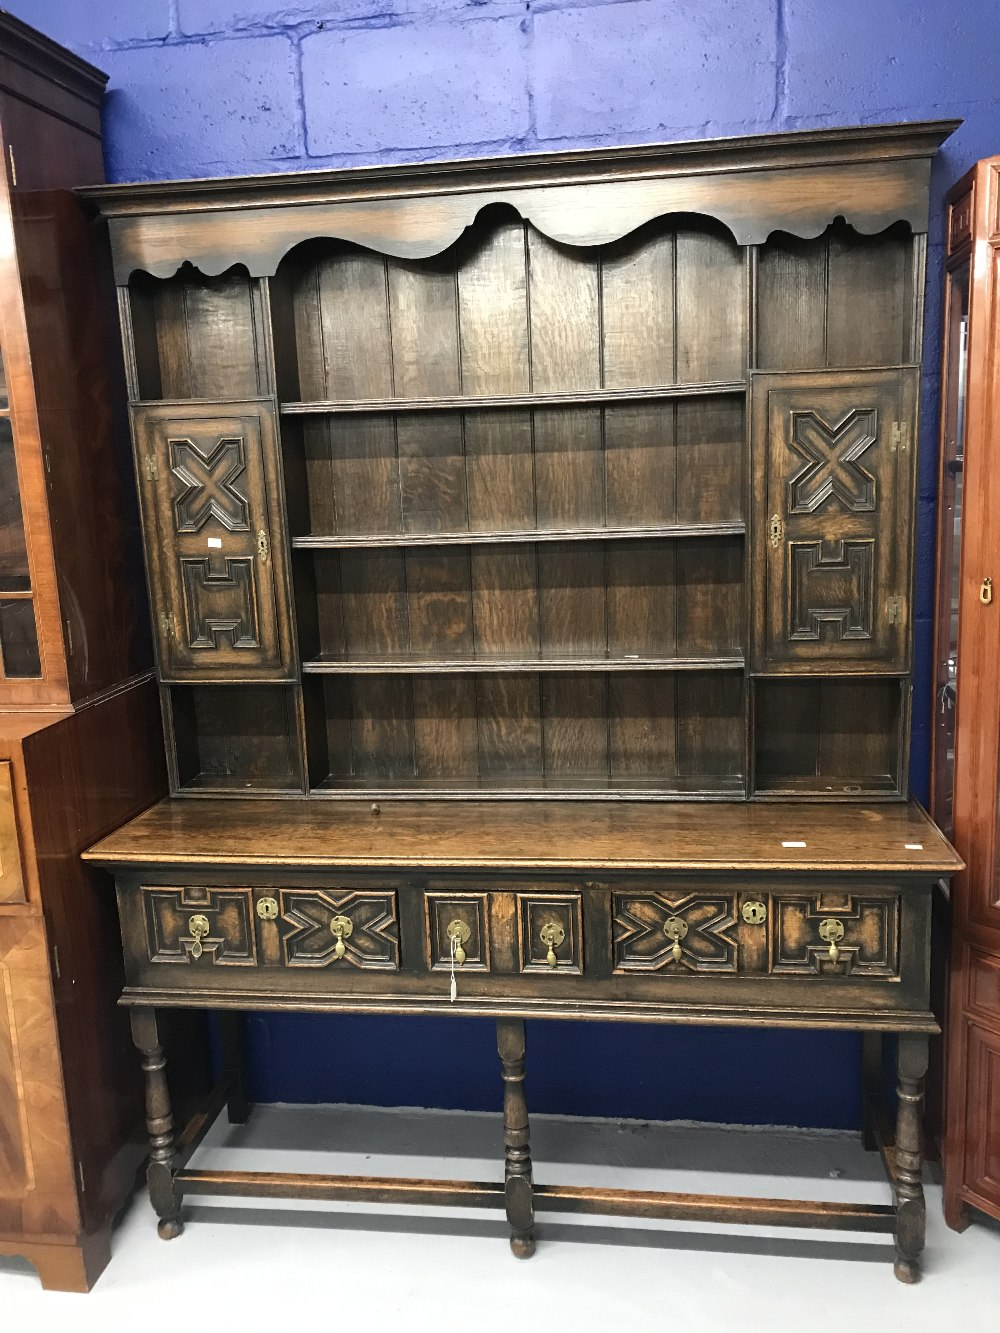 Lot 5 - 1930s, 17th cent. style, oak dresser with geometric mouldings and brass pear drop handles on